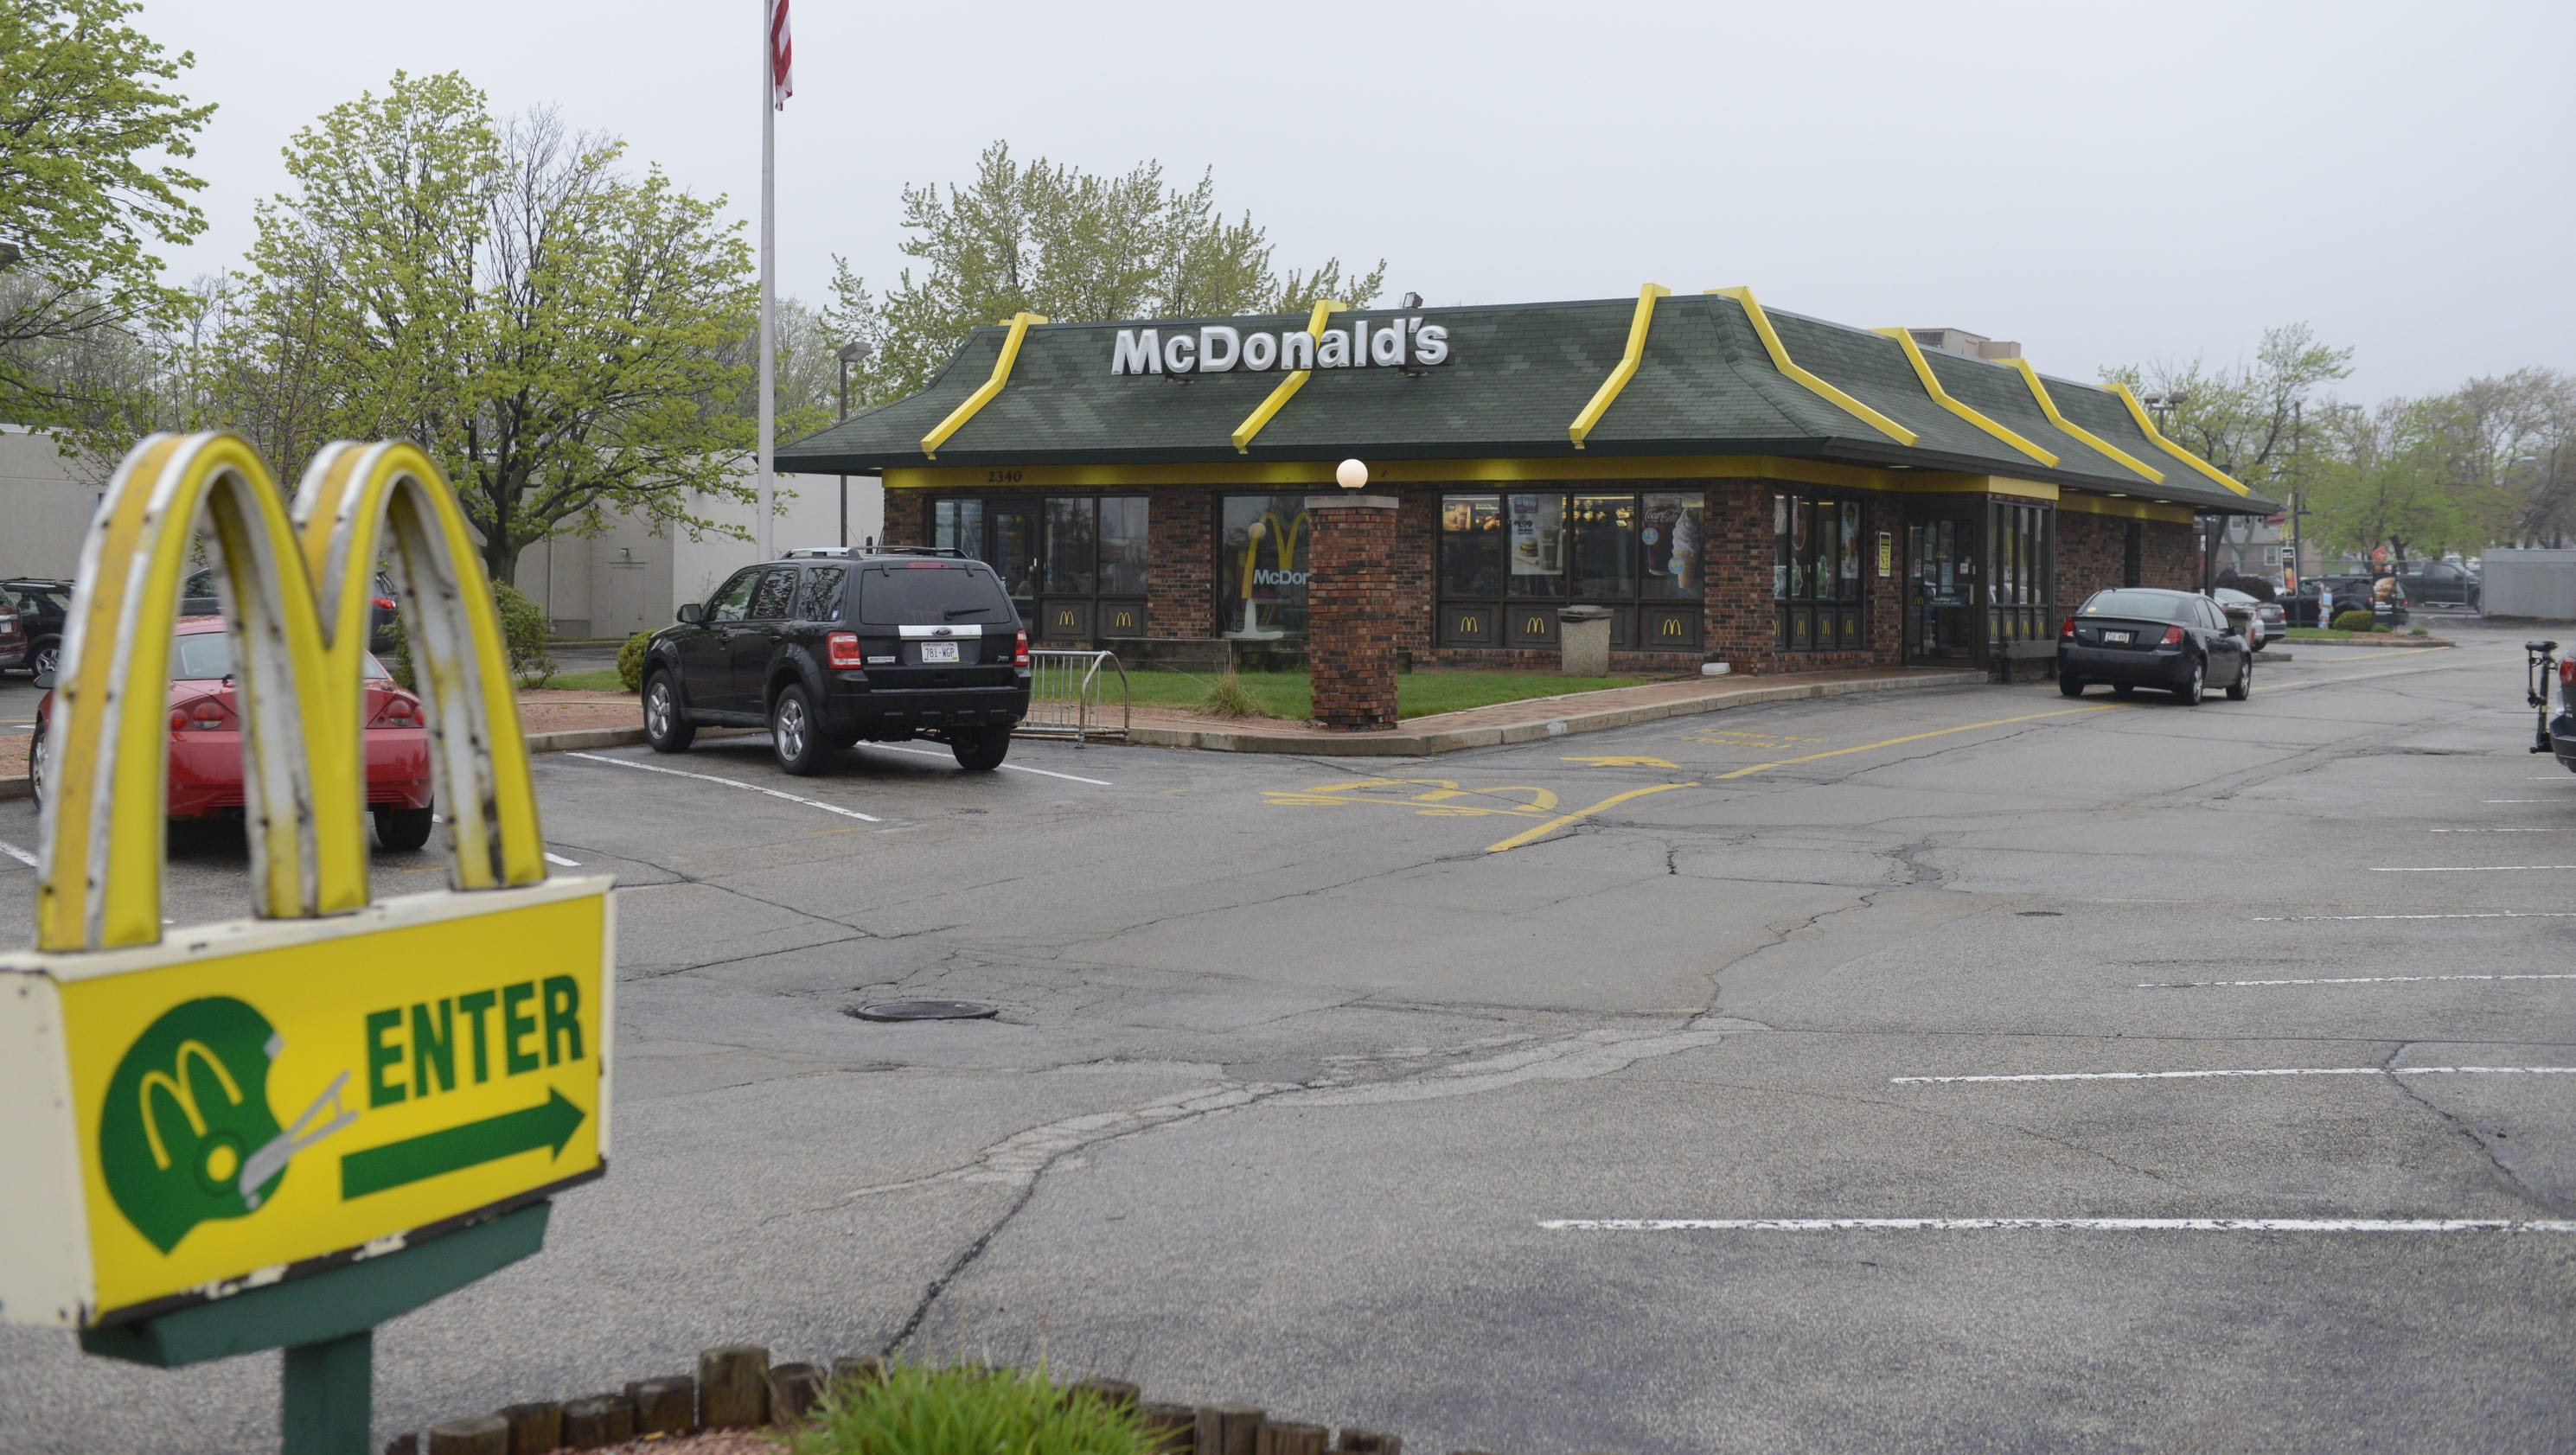 mcdonald current situation The business outlook at mcdonald's is mixed management just unveiled a new global turnaround plan centered on driving operations, returning excitement to the brand.